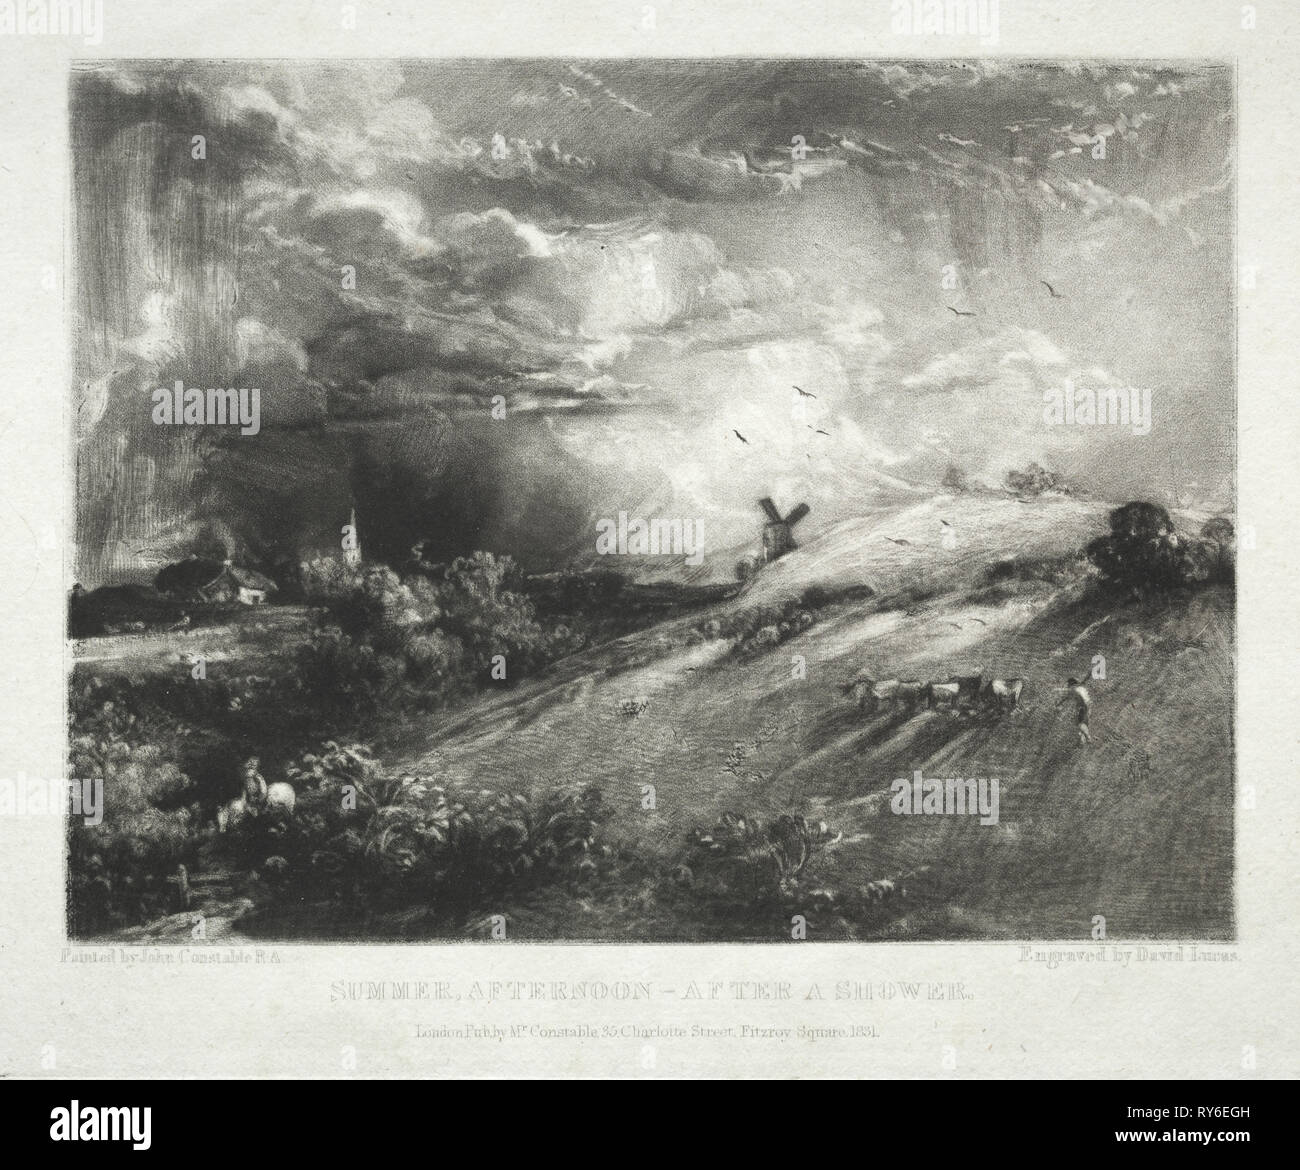 Various Subjects of Landscape, Characteristic of English Scenery from Pictures Painted by John Constable, R.A.:  Summer Afternoon - after a Shower, 1831. David Lucas (British, 1802-1881), after John Constable (British, 1776-1837). Mezzotint - Stock Image